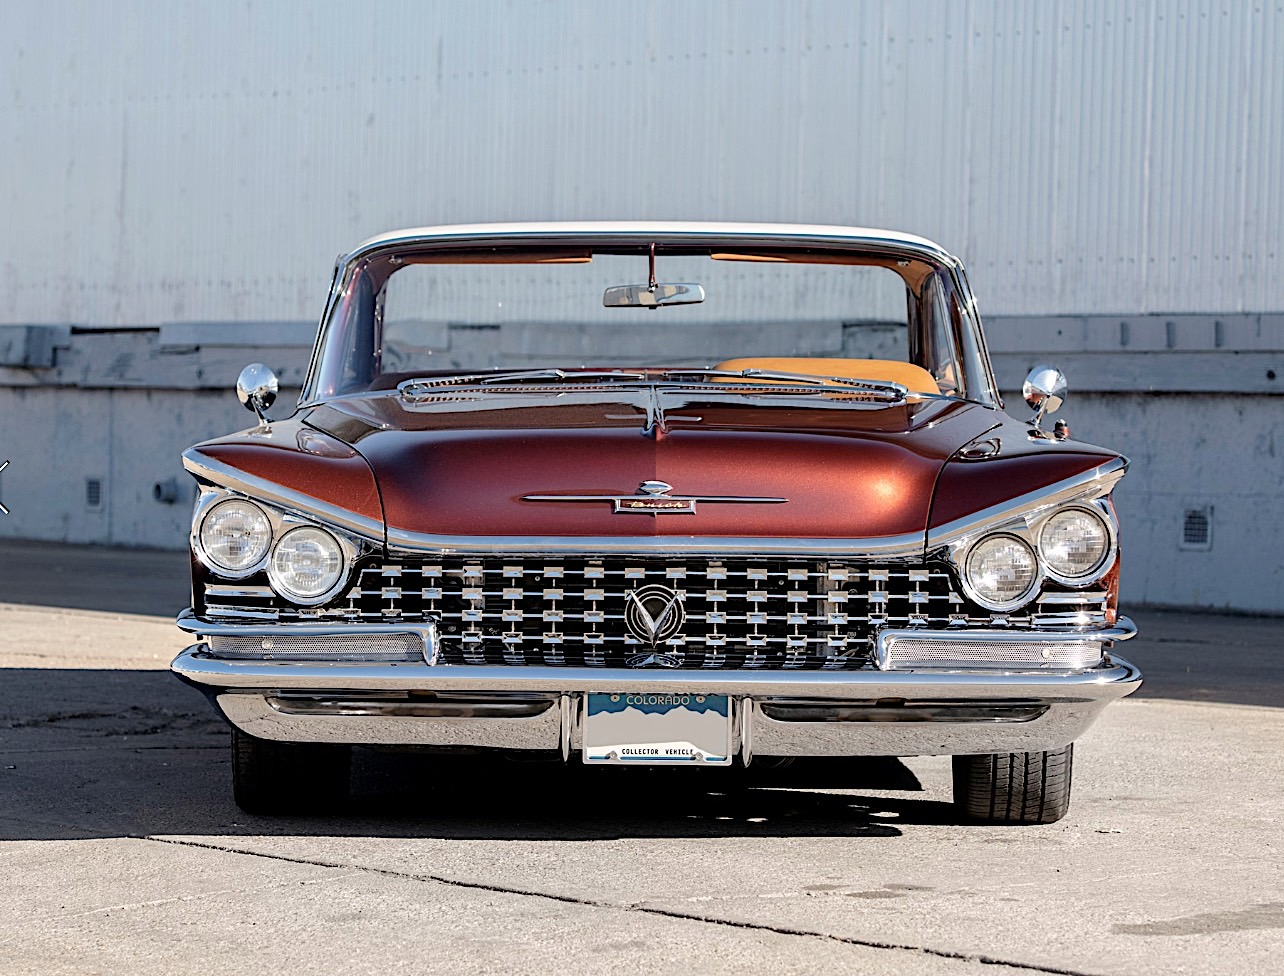 1959-buick-lesabre-hardtop-hot-rod-is-st